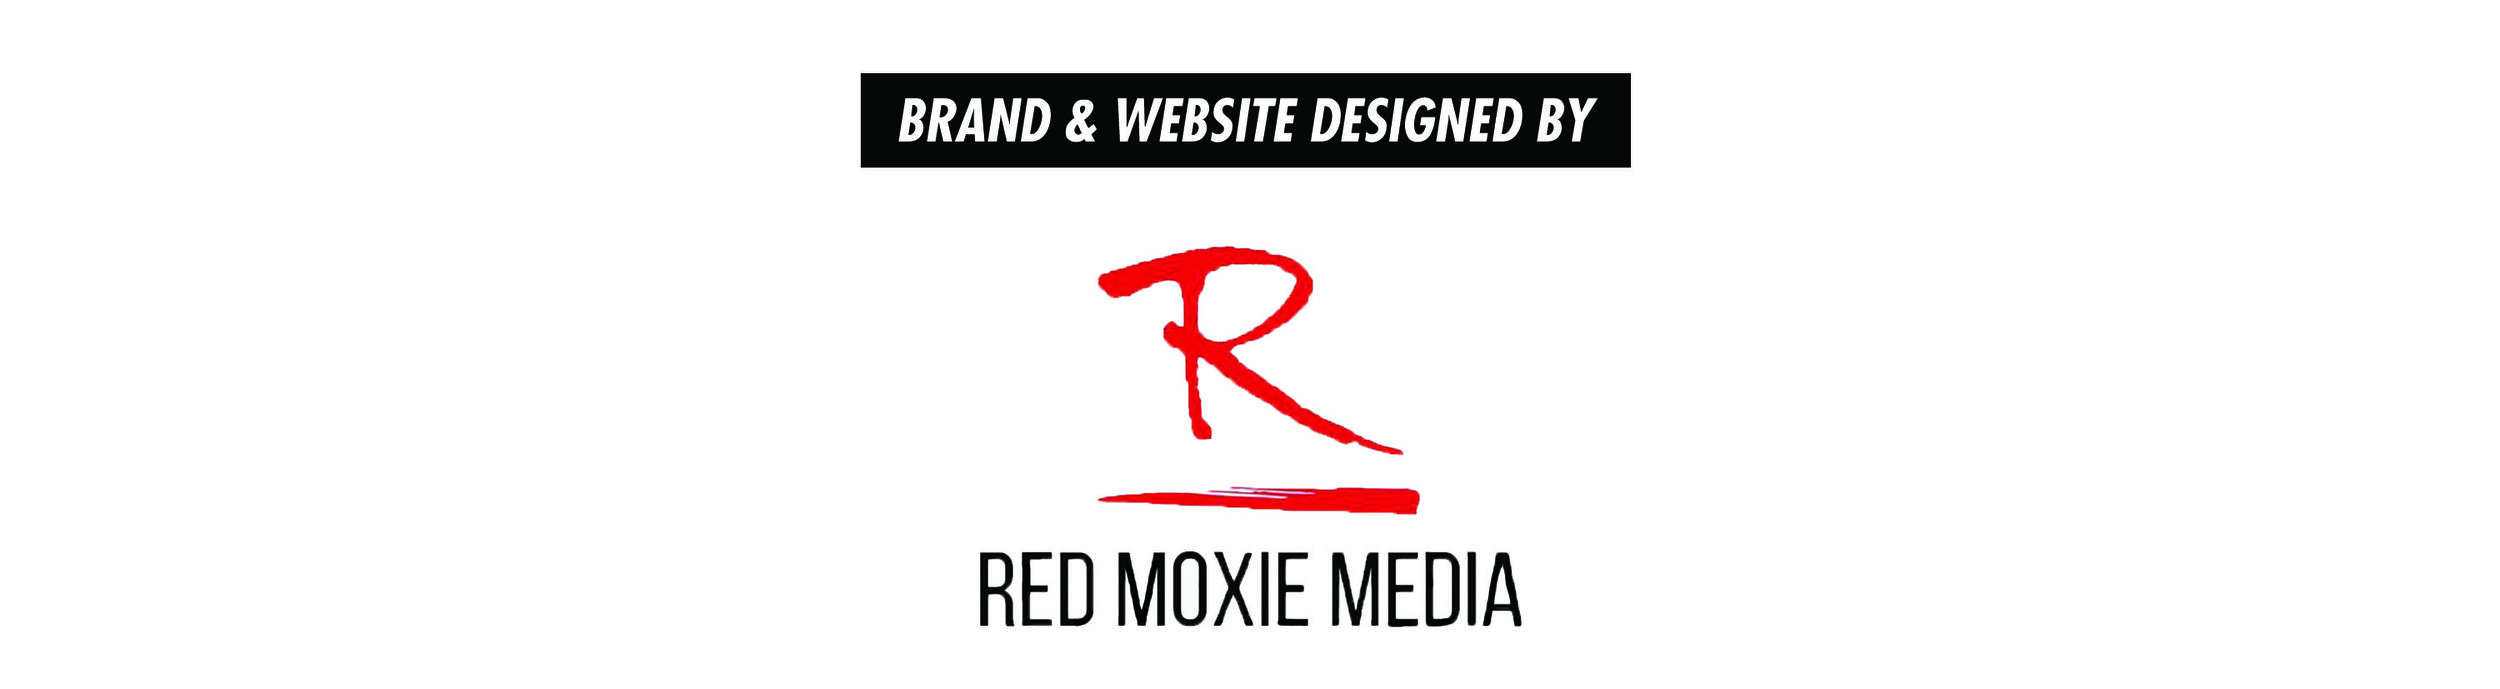 designedby.redmox1.jpg